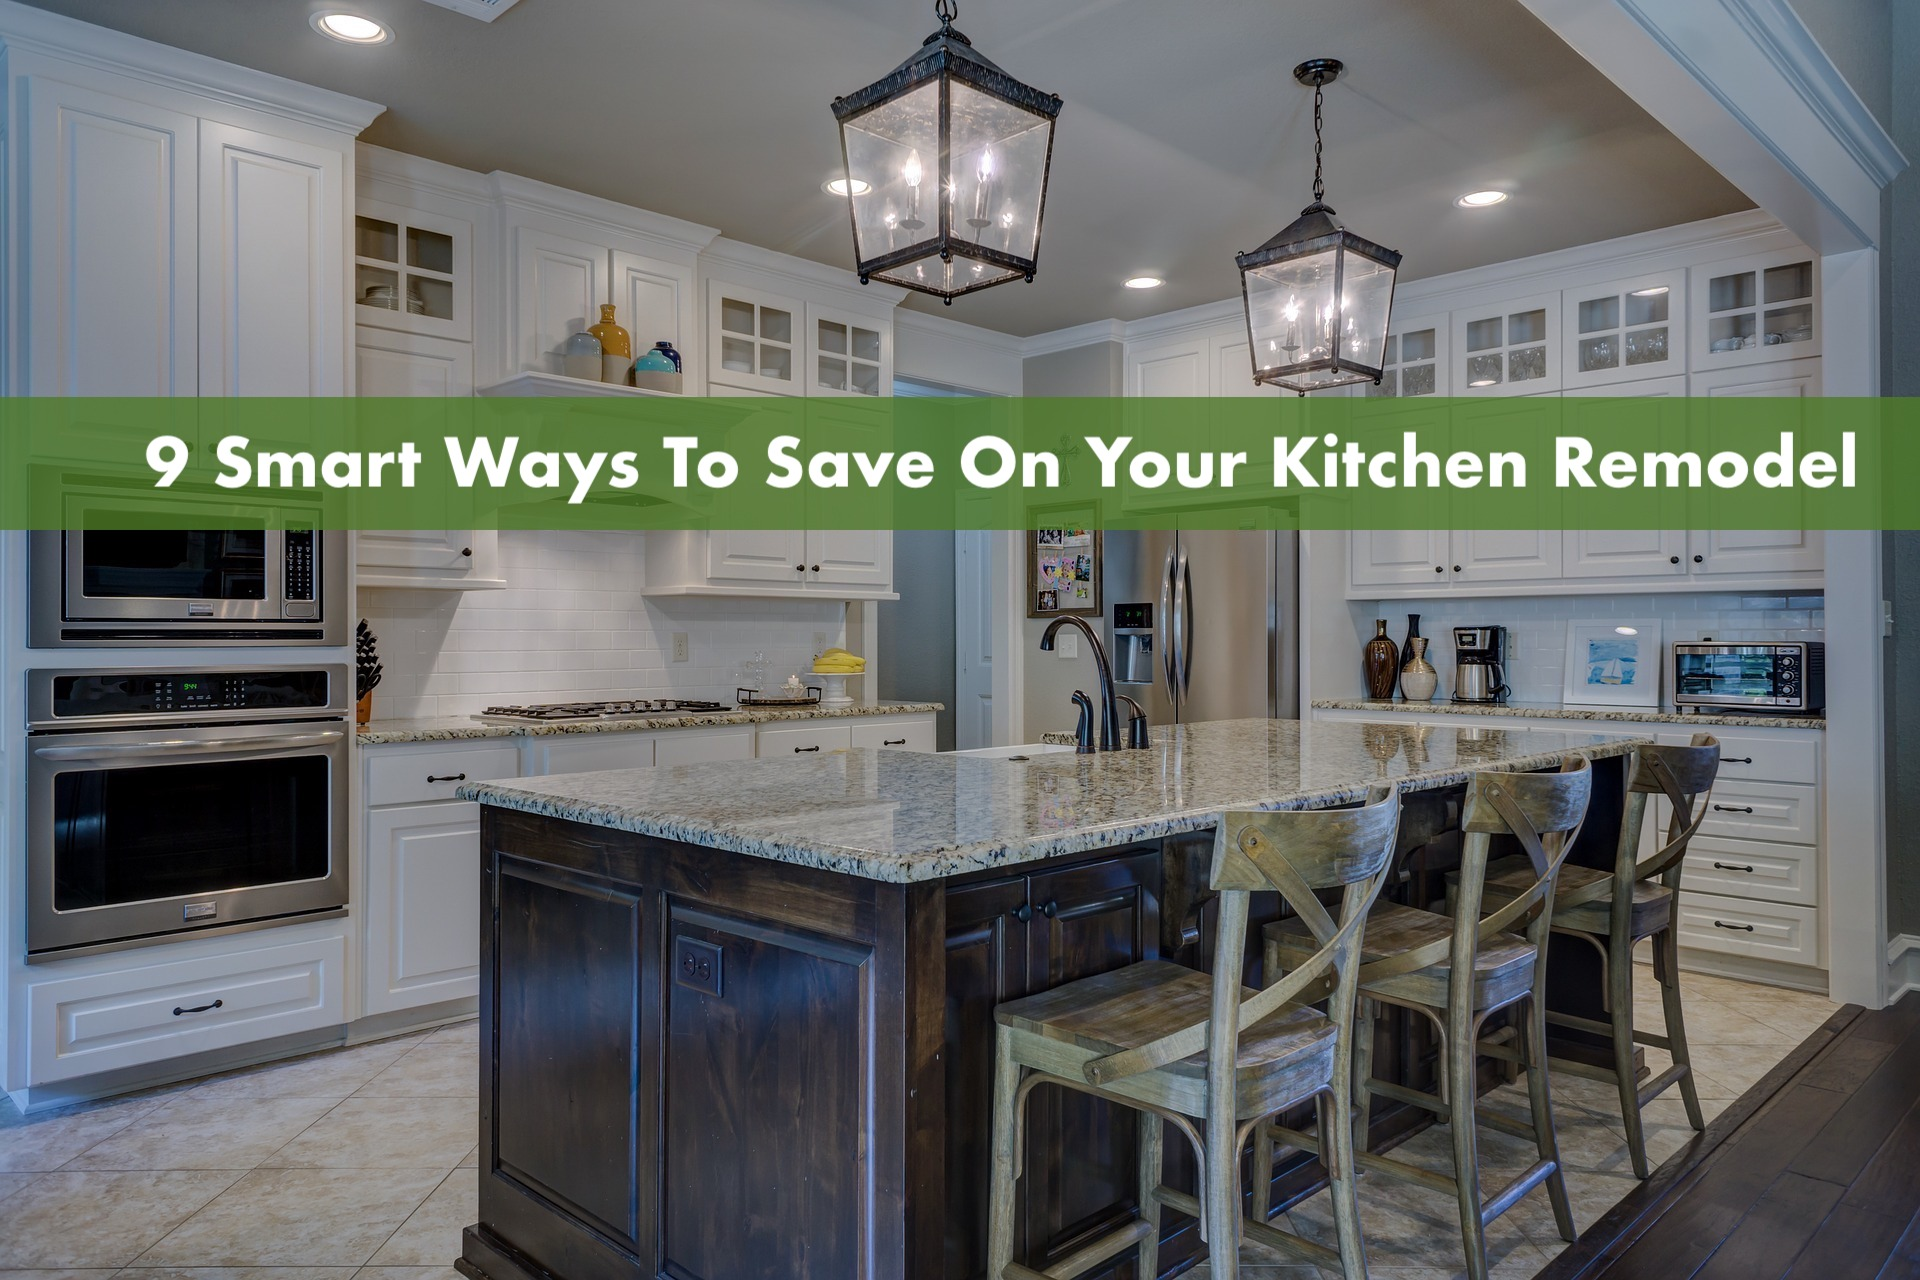 9 smart ways to save on a rental kitchen remodel - accidentalrental